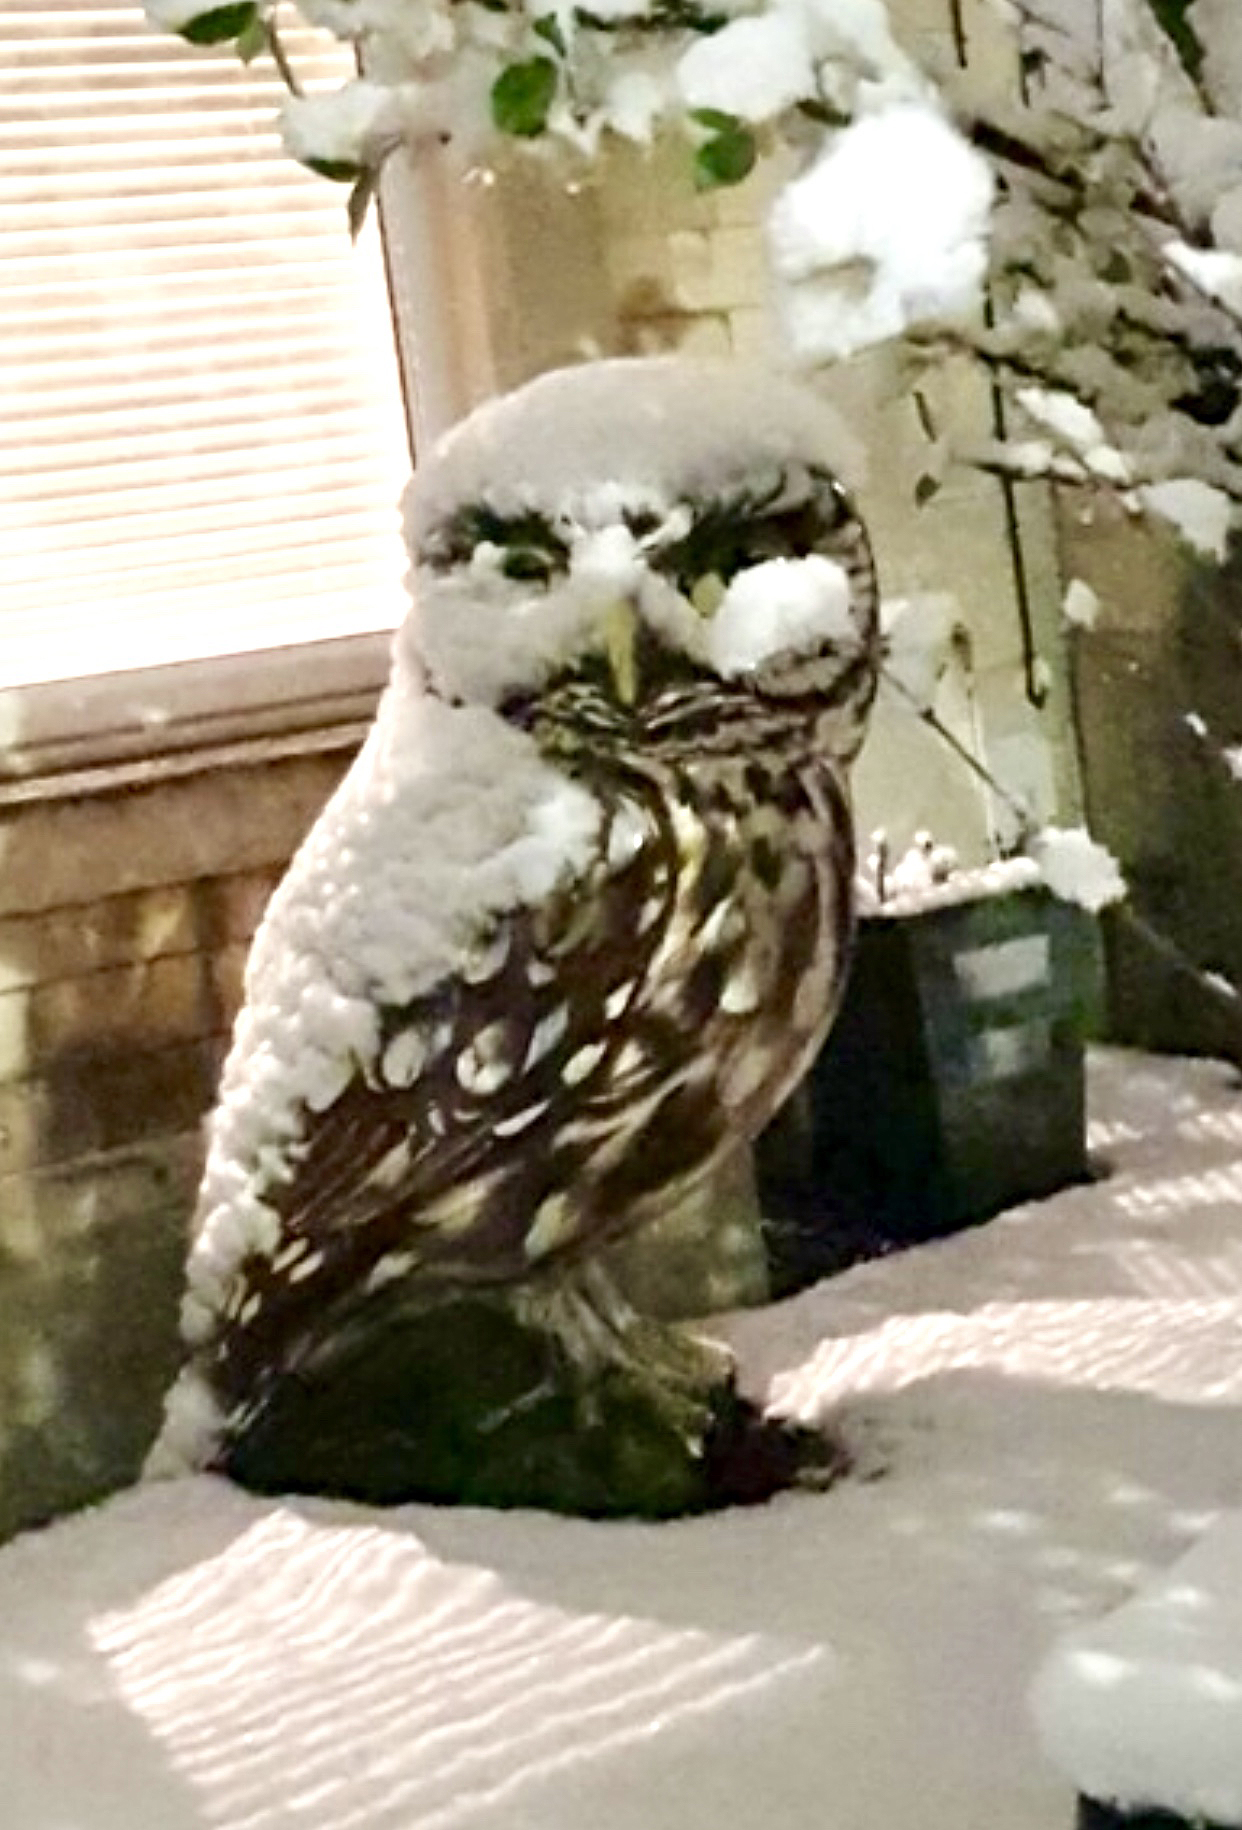 Cold snap transforms Little Owl into Snowy Owl!